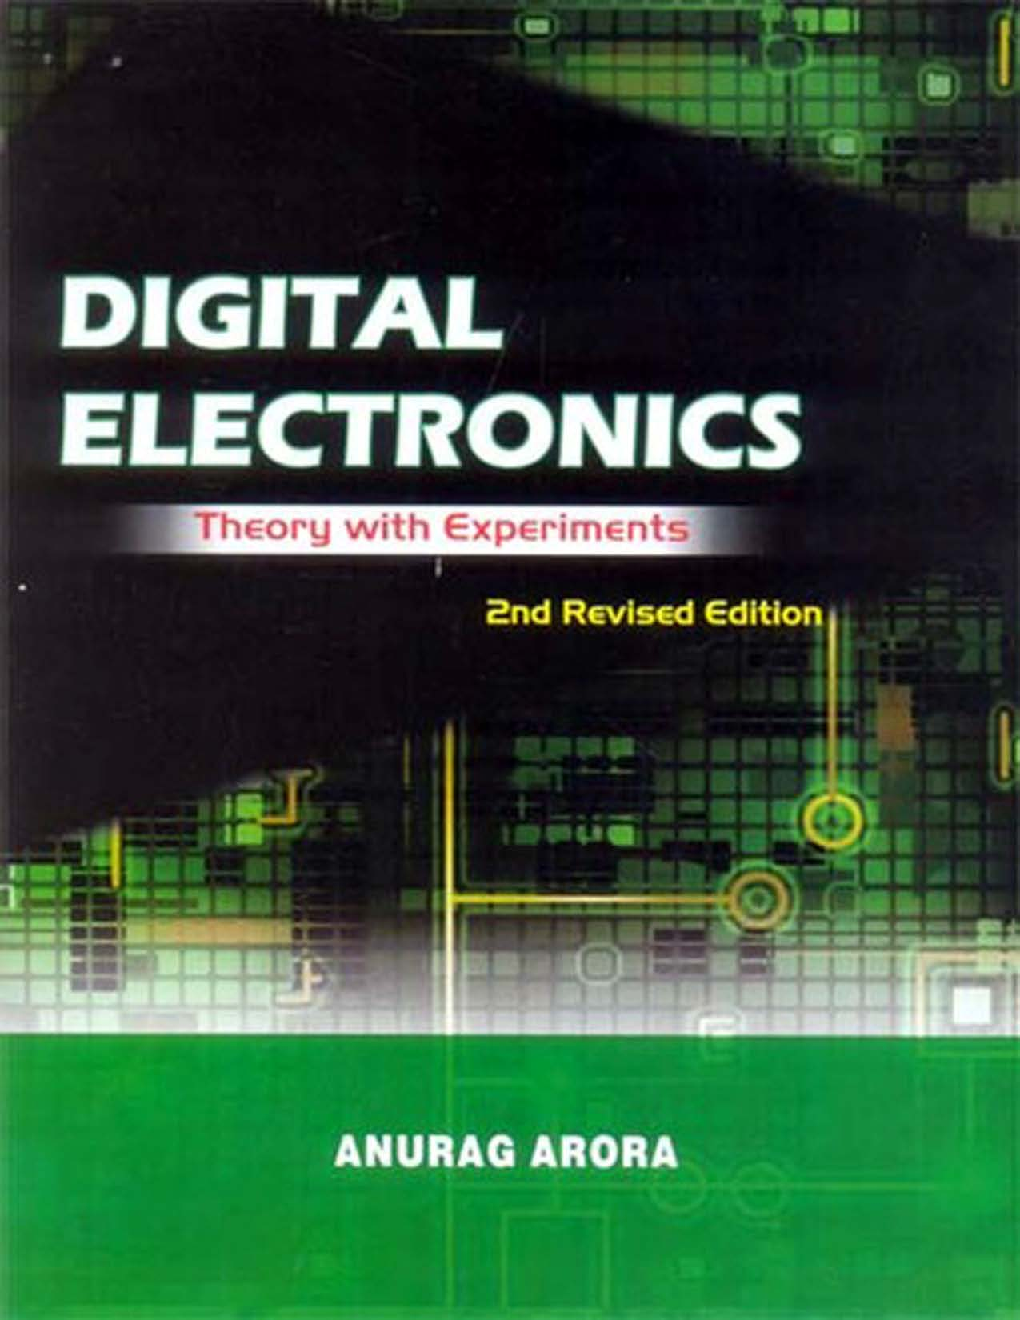 Digital Electronics, Theory with Experiments eBook - Page 1